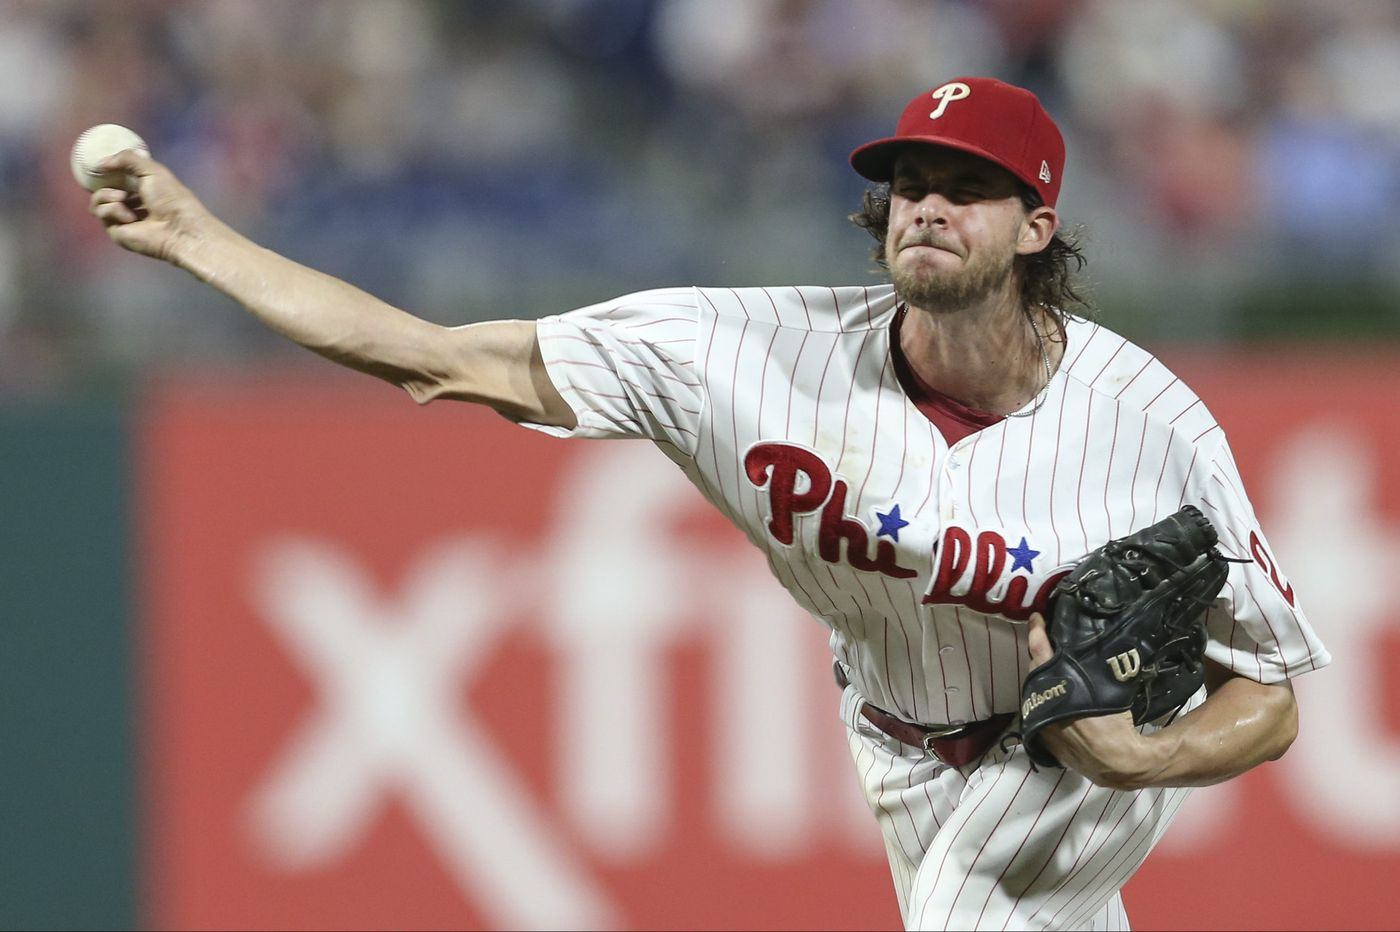 Phillies youngsters will dictate how much they have improved | Bob Brookover